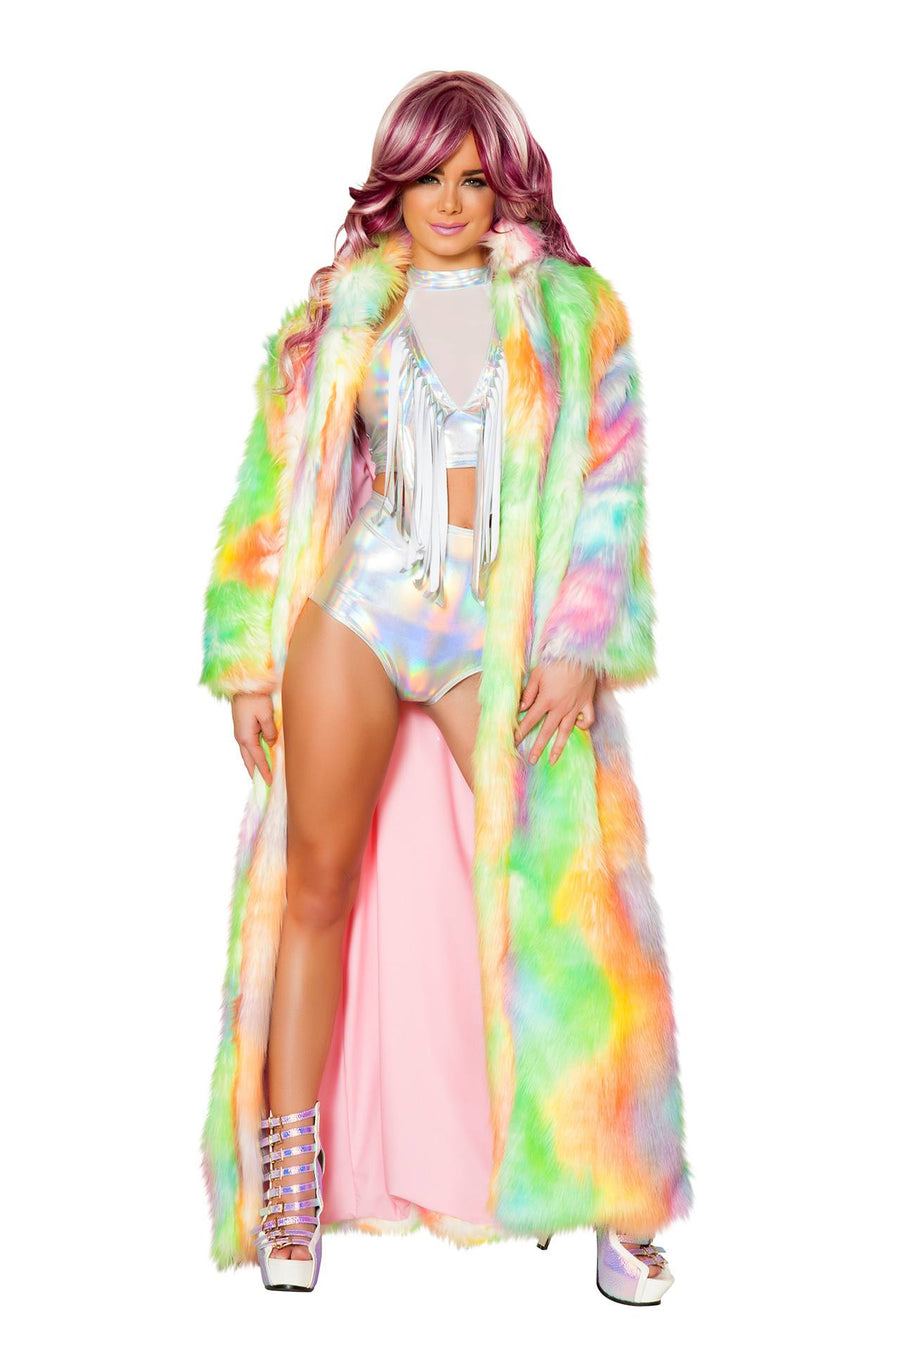 J-Valentine Light-Up Full Length Coat - J Valentine, Light-Up Cropped - YourLamode - 1